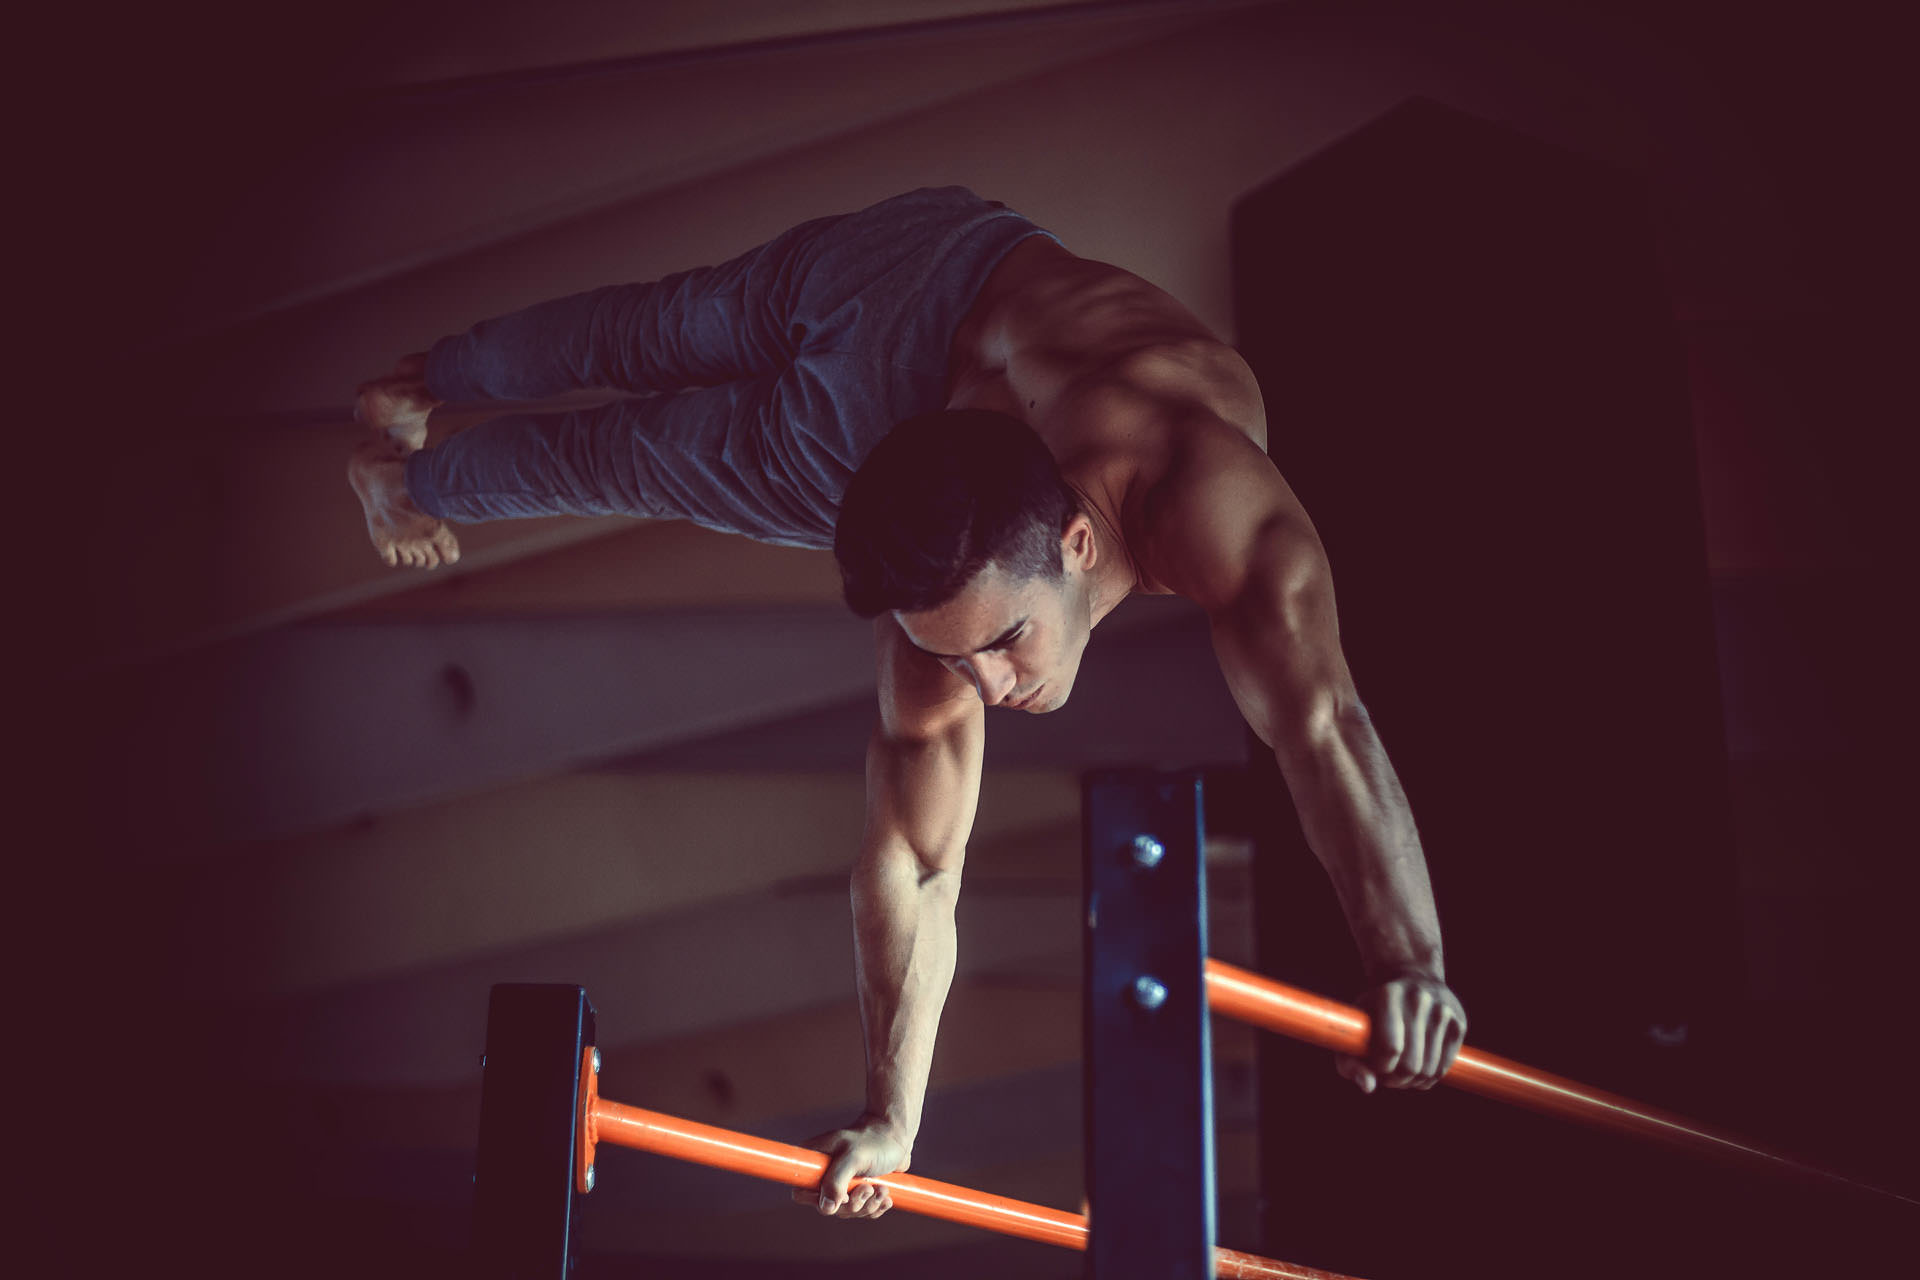 2015-09-02 - SoBad Workout - Aubervilliers - 8053 - 1920px